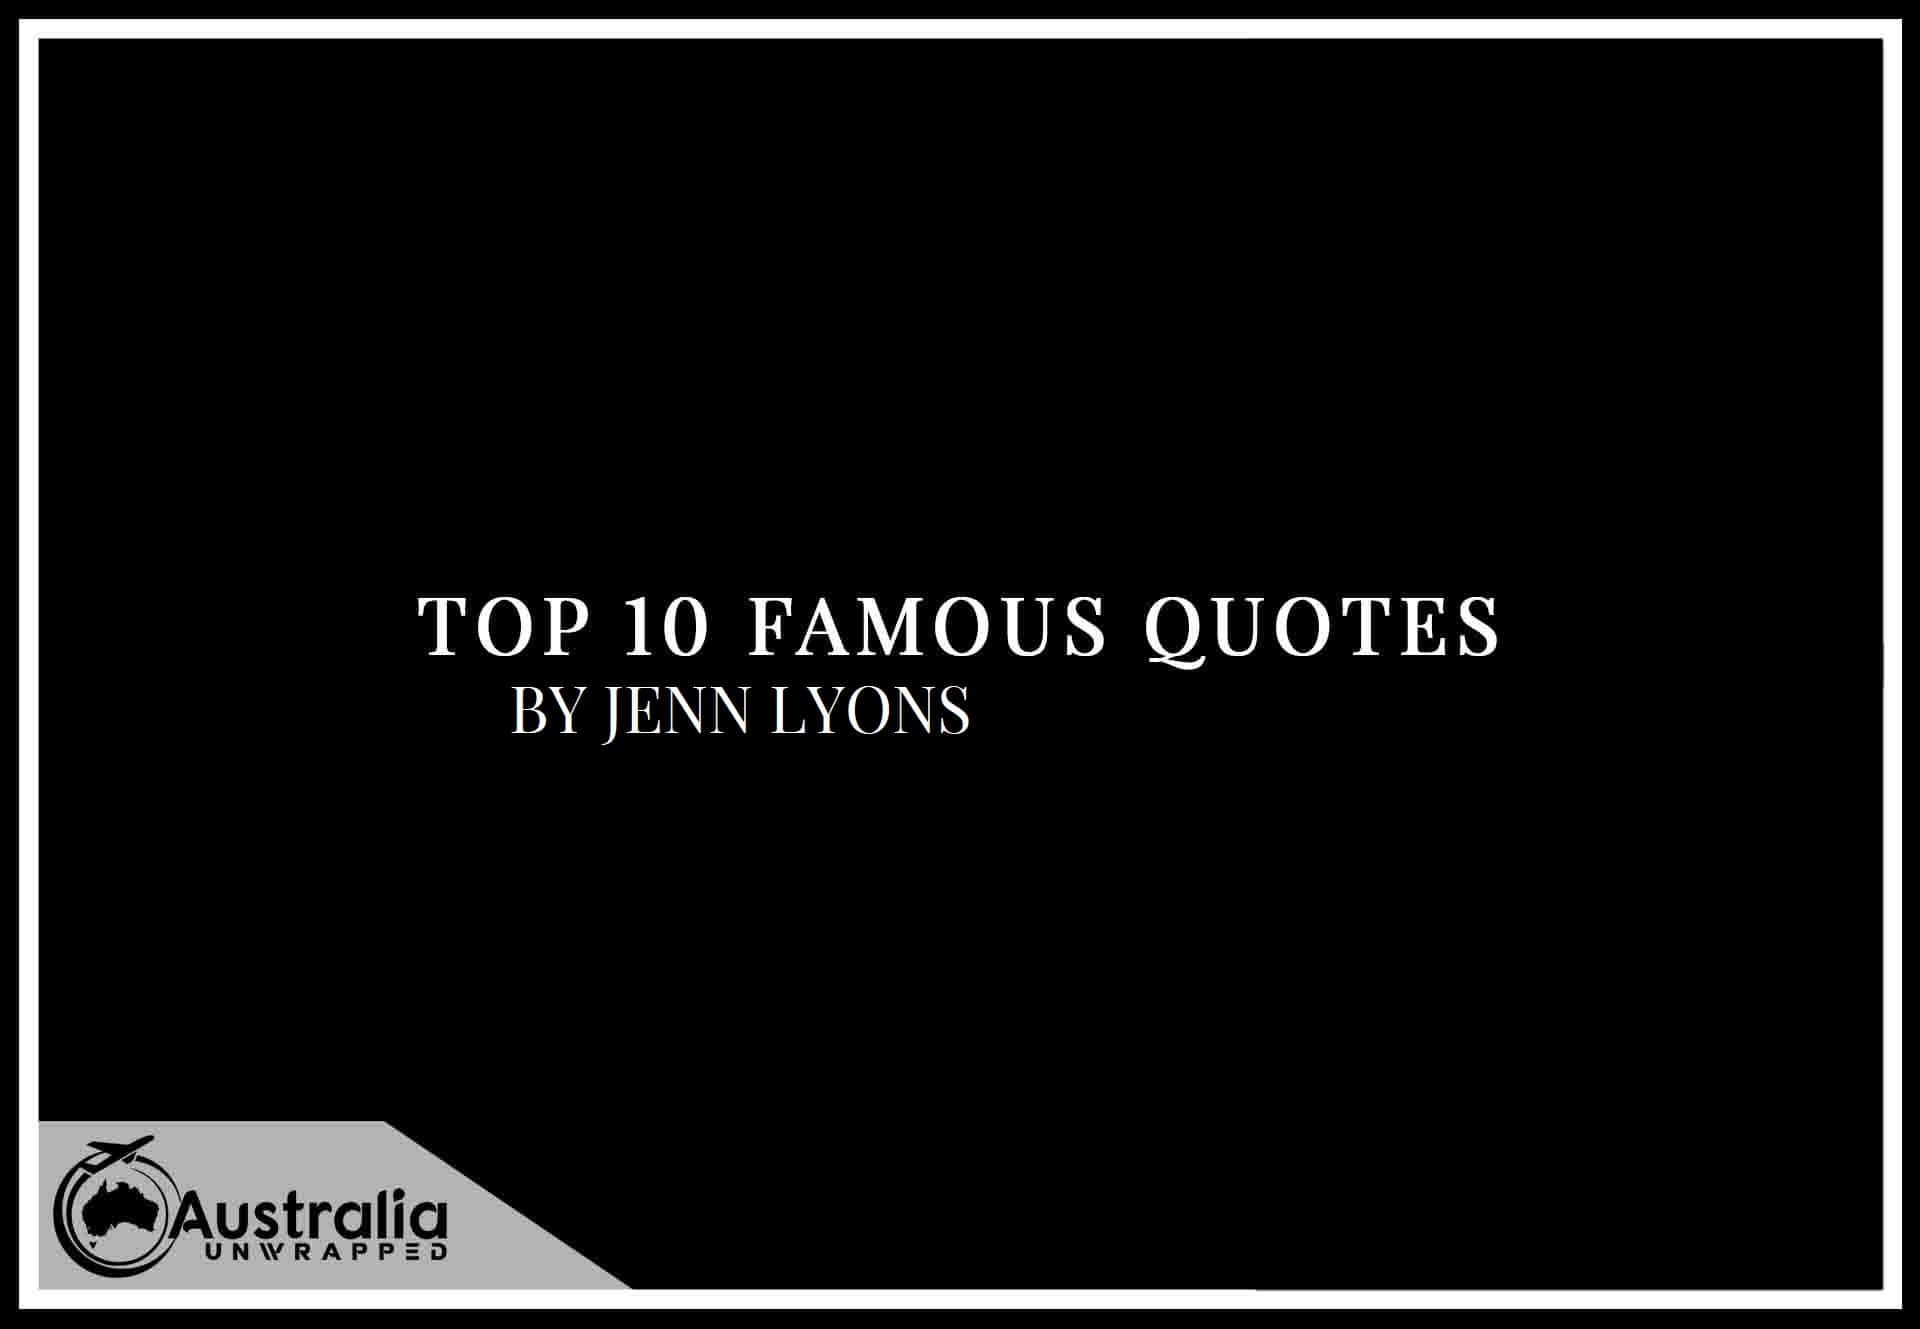 Top 10 Famous Quotes by Author Jenn Lyons